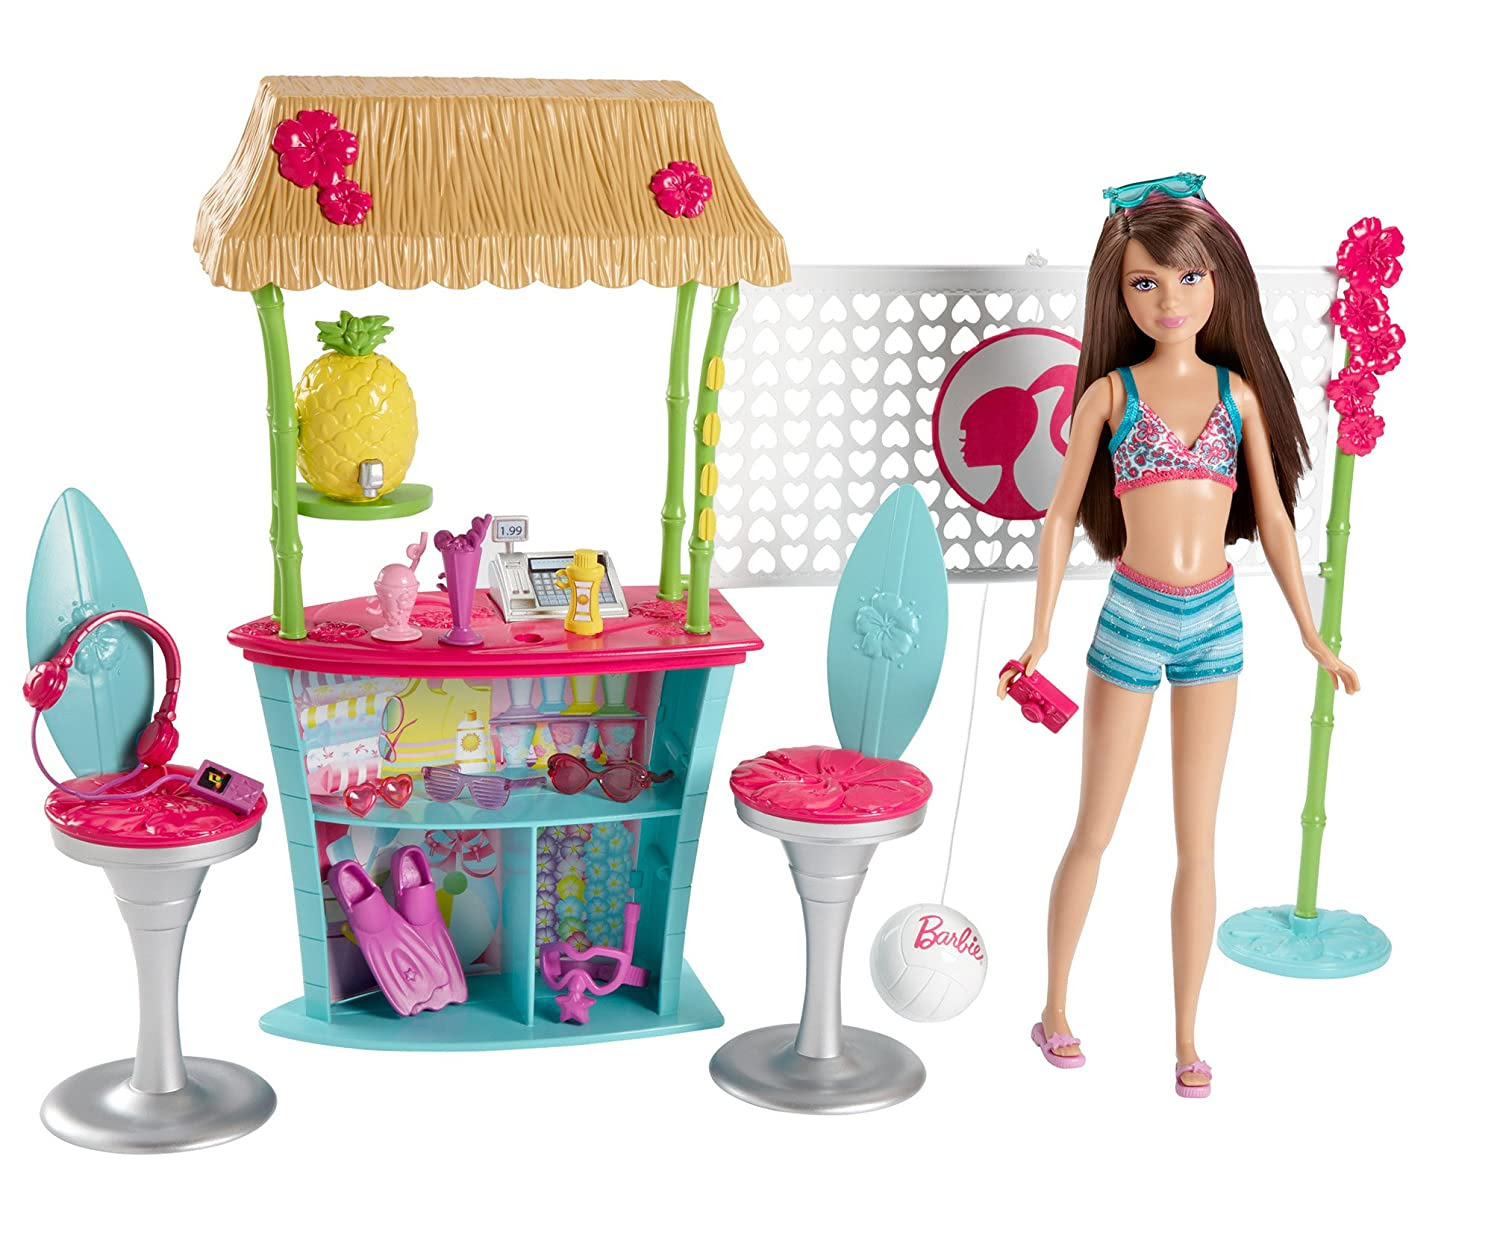 Barbie's Sister Skipper and the Tiki Hut